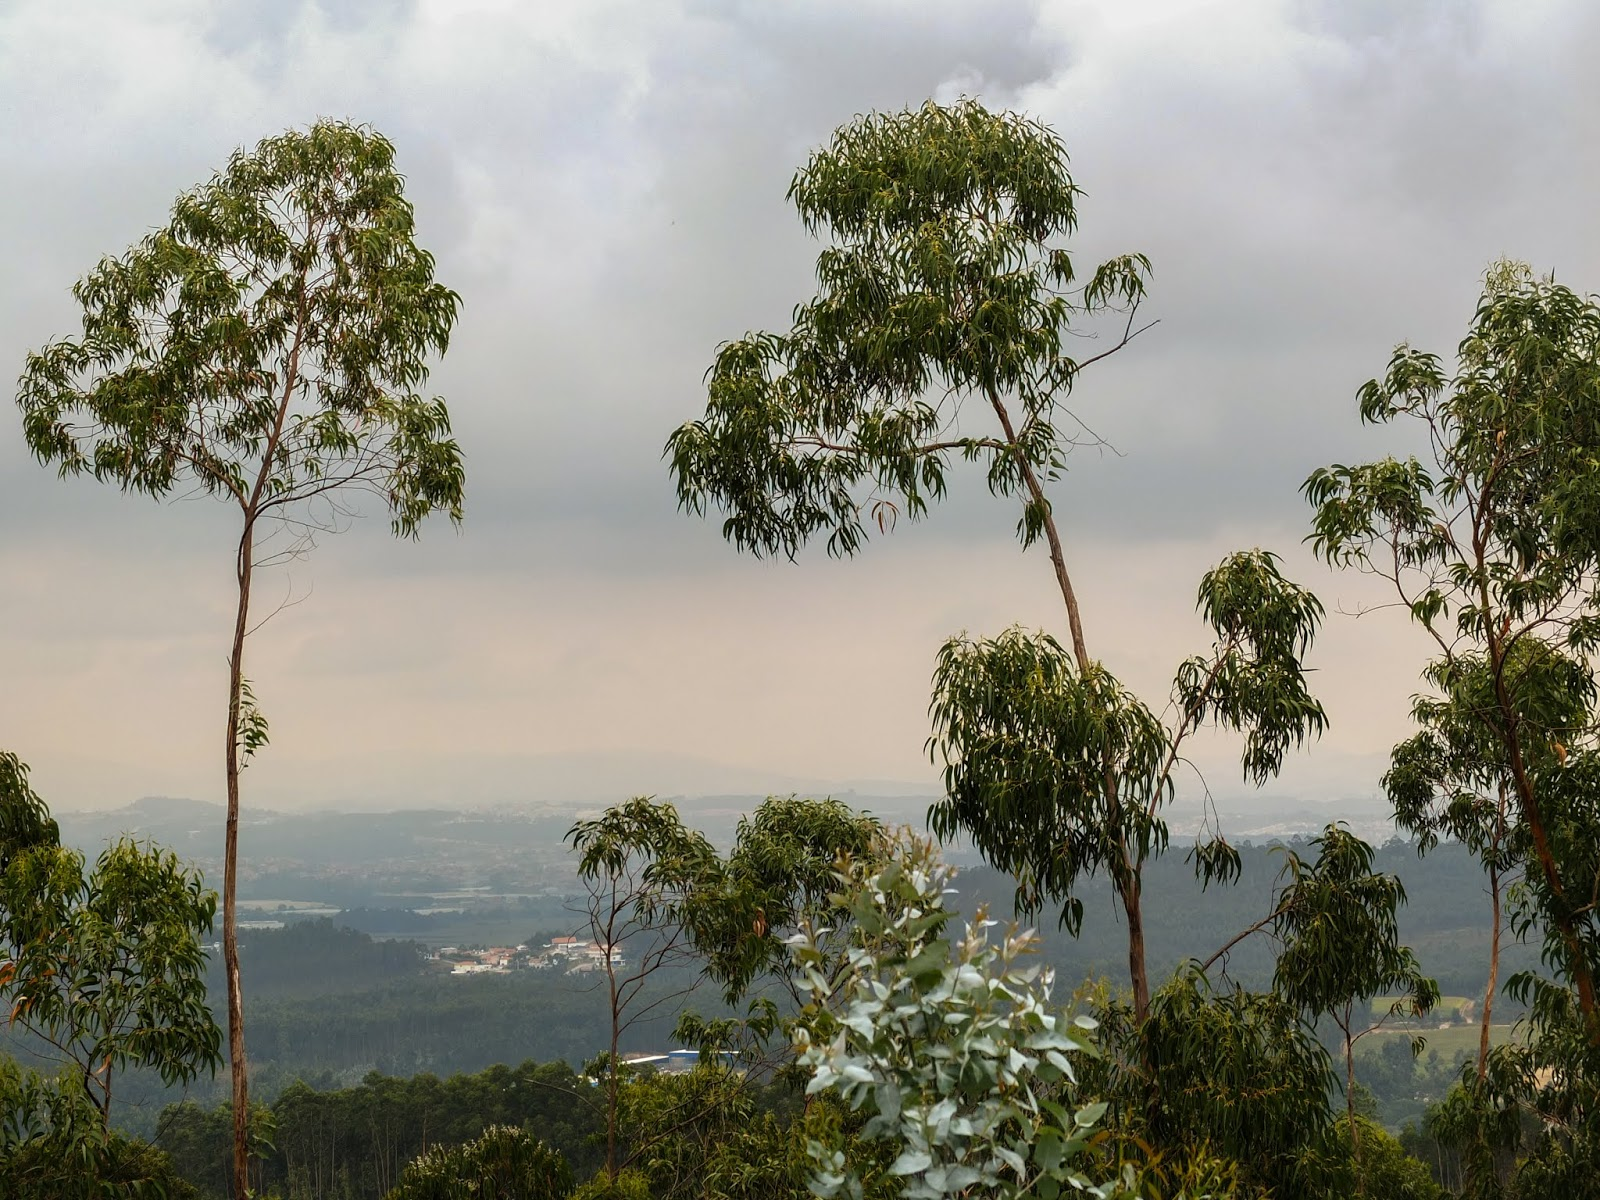 A mountain view with eucalyptus trees in the foreground in the North of Portugal.